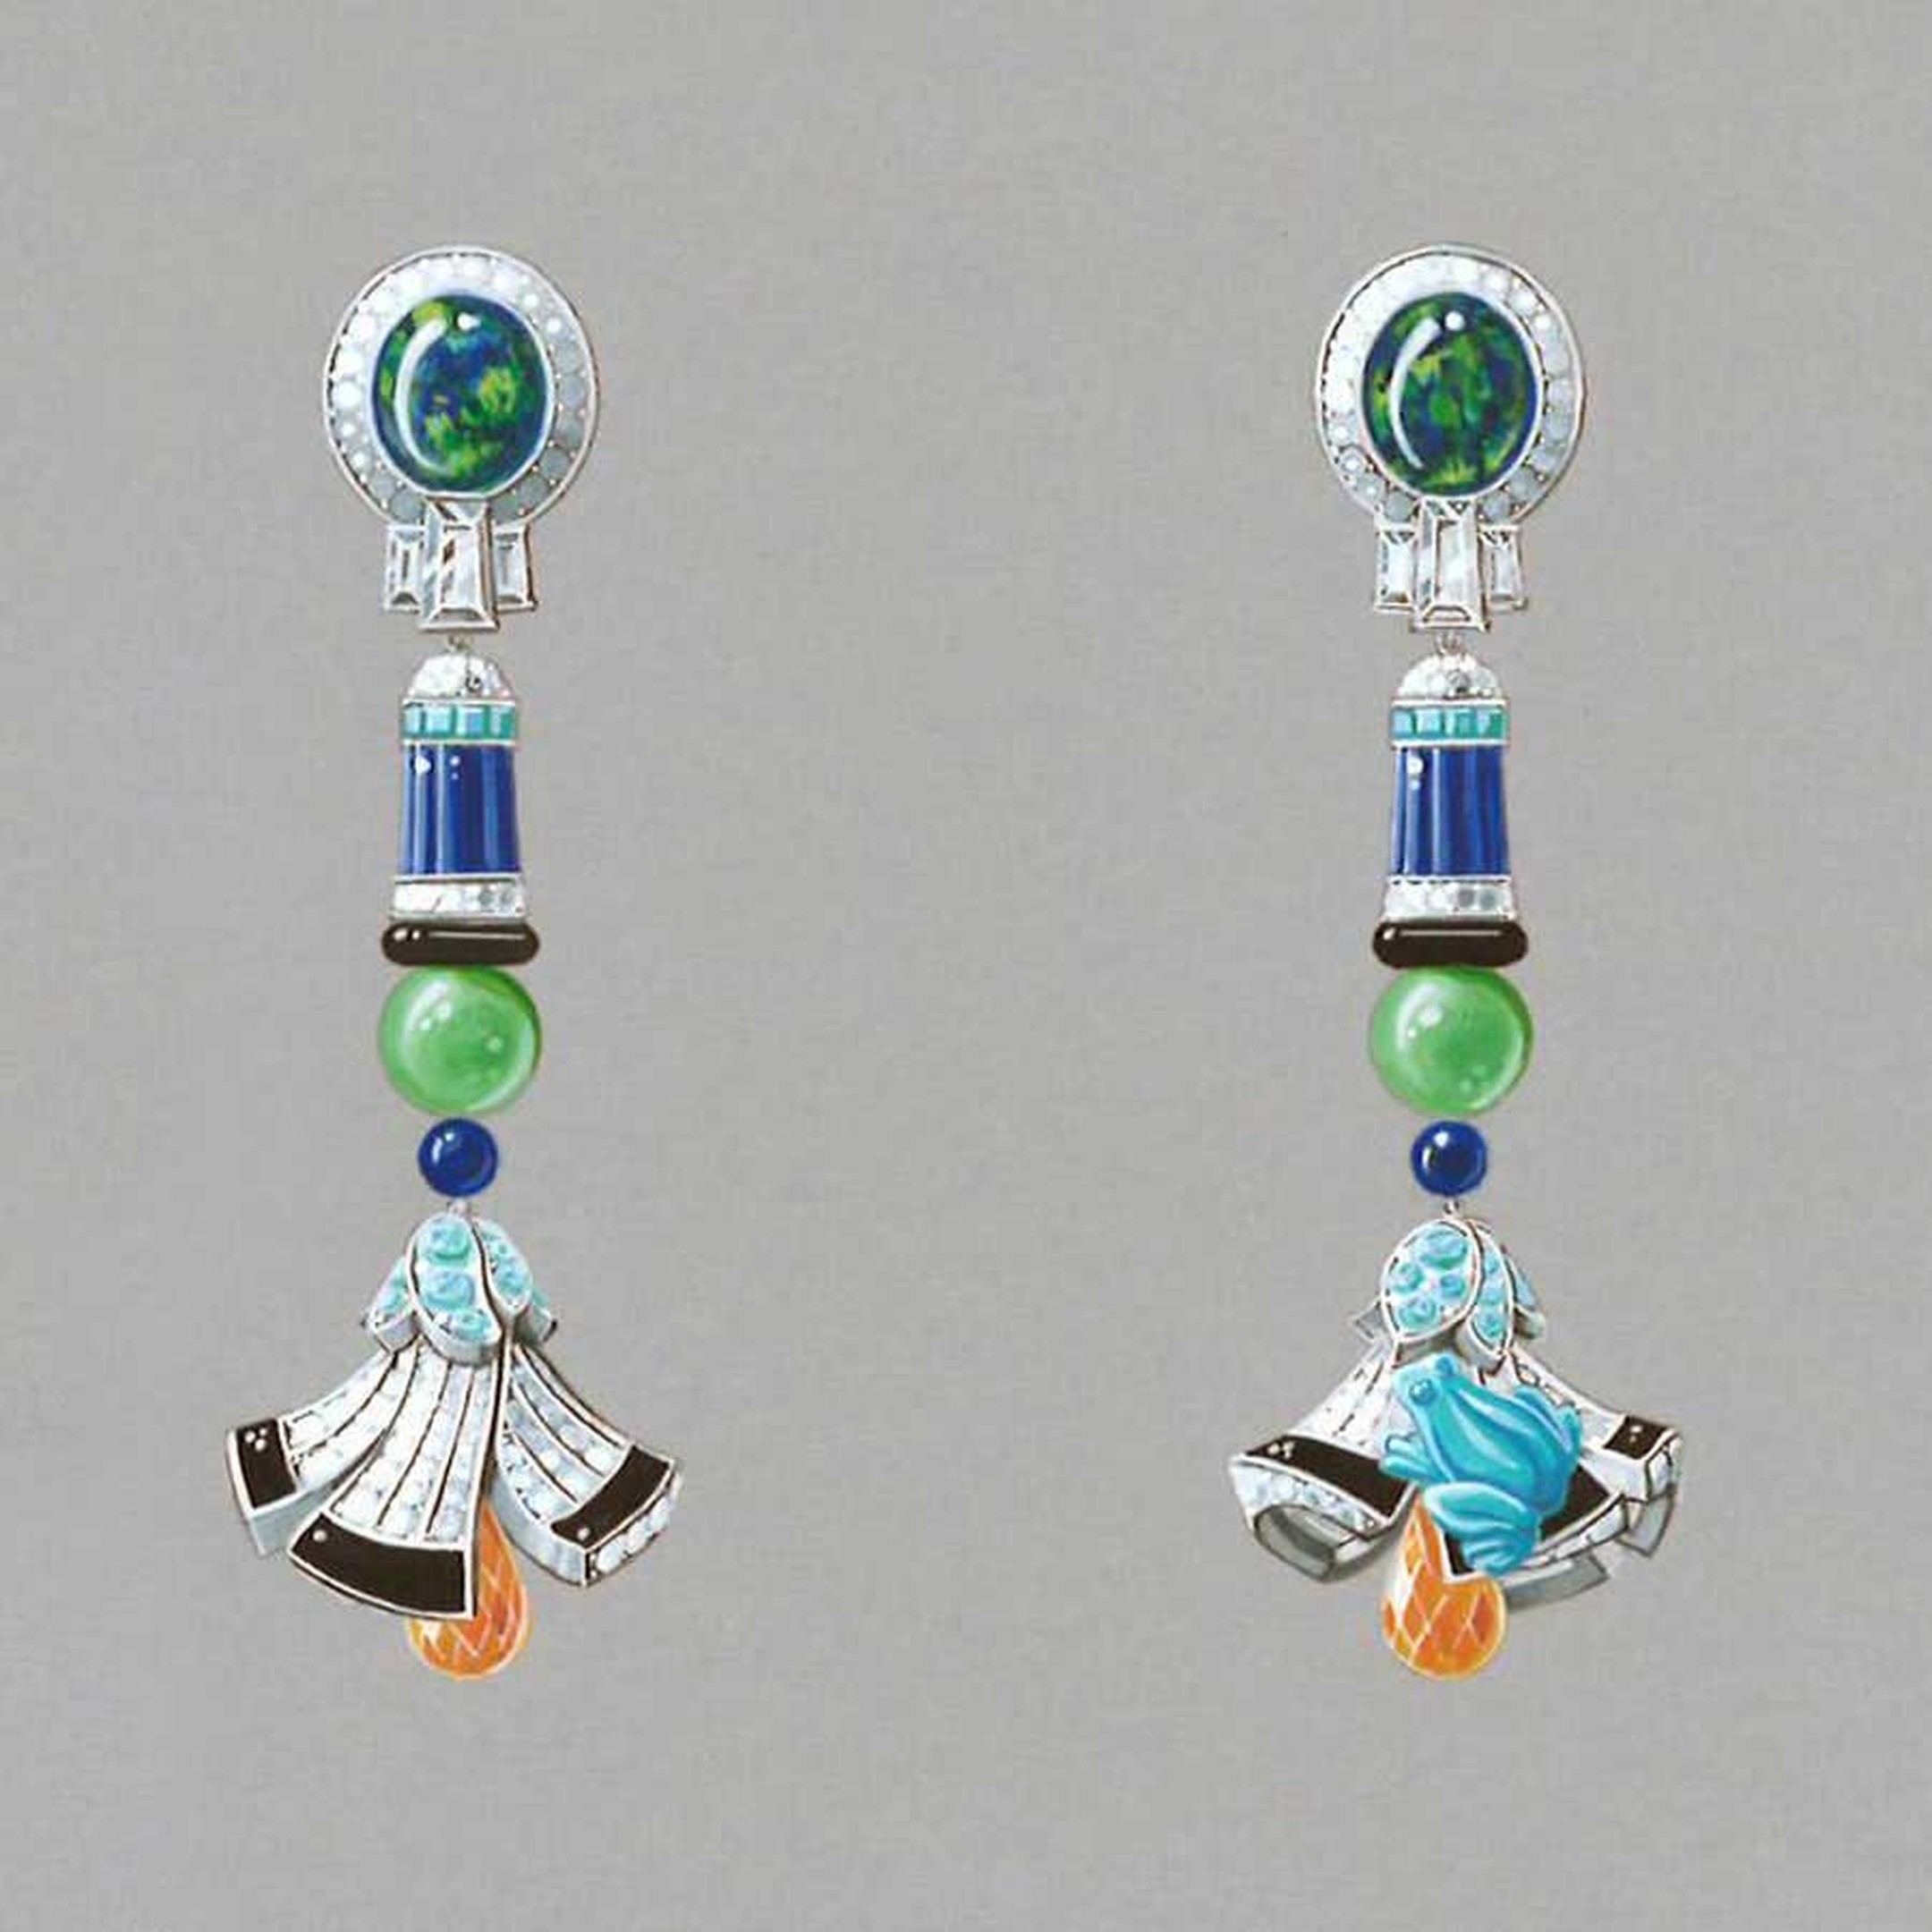 Van Cleef & Arpels Palais de la chance High Jewellery collection Lucky Legends Everlasting Light long earrings featuring white gold, diamonds, tourmalines, onyx, lapis lazuli, chrysoprase, turquoise, emeralds, Mandarin garnets and 2 black opals weighing 5